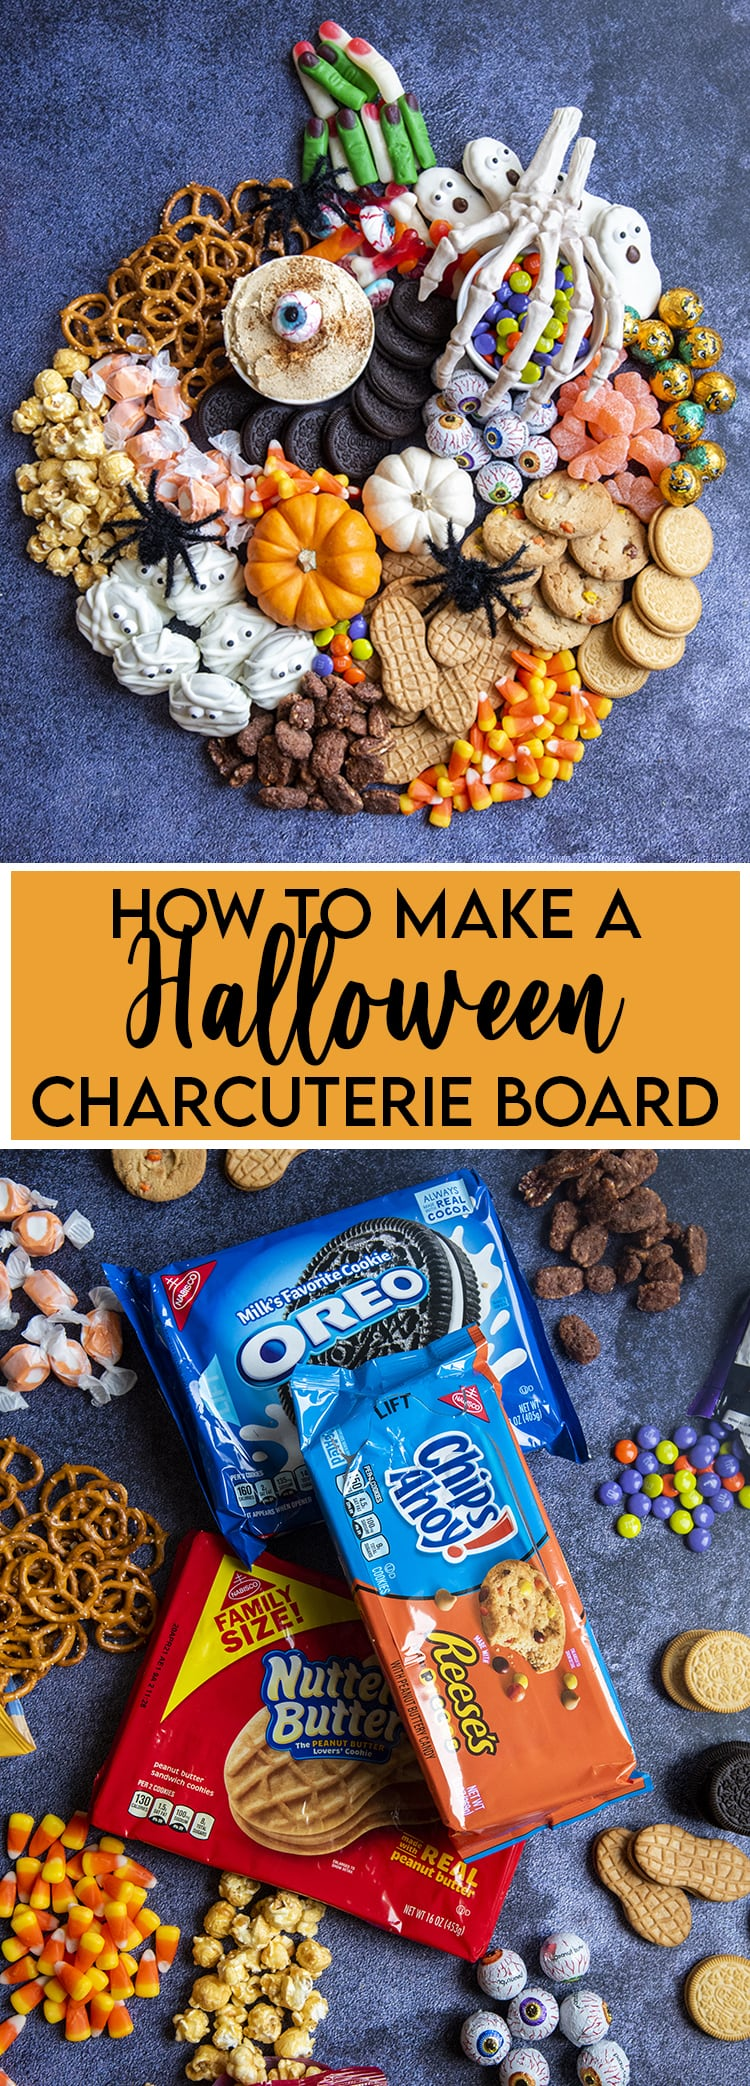 A collage of two photos how to make a Halloween charcuterie board, with a pumpkin shaped charcuterie board and a pile of halloween treats in the second photo.